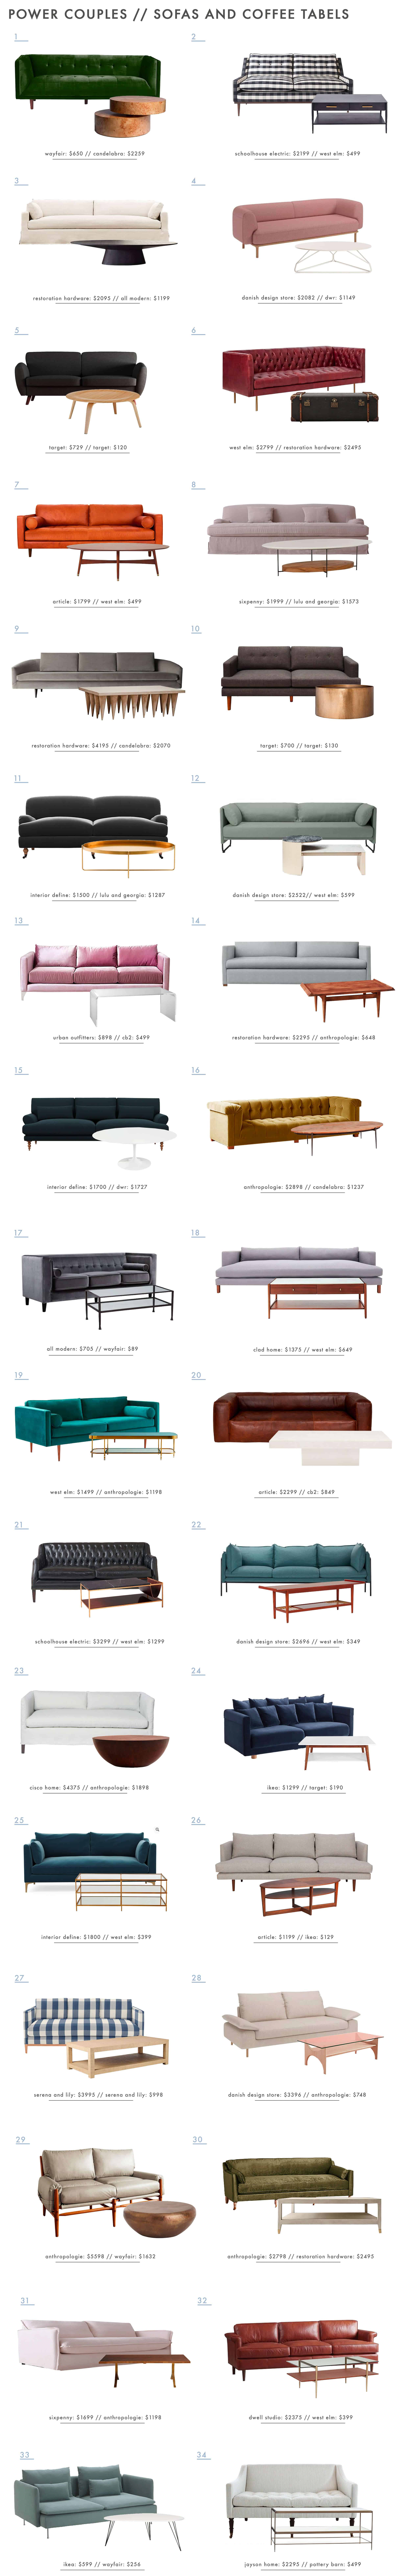 Emily-Henderson_Power-Couples_Sofas_Coffee-Tables_Roundup2